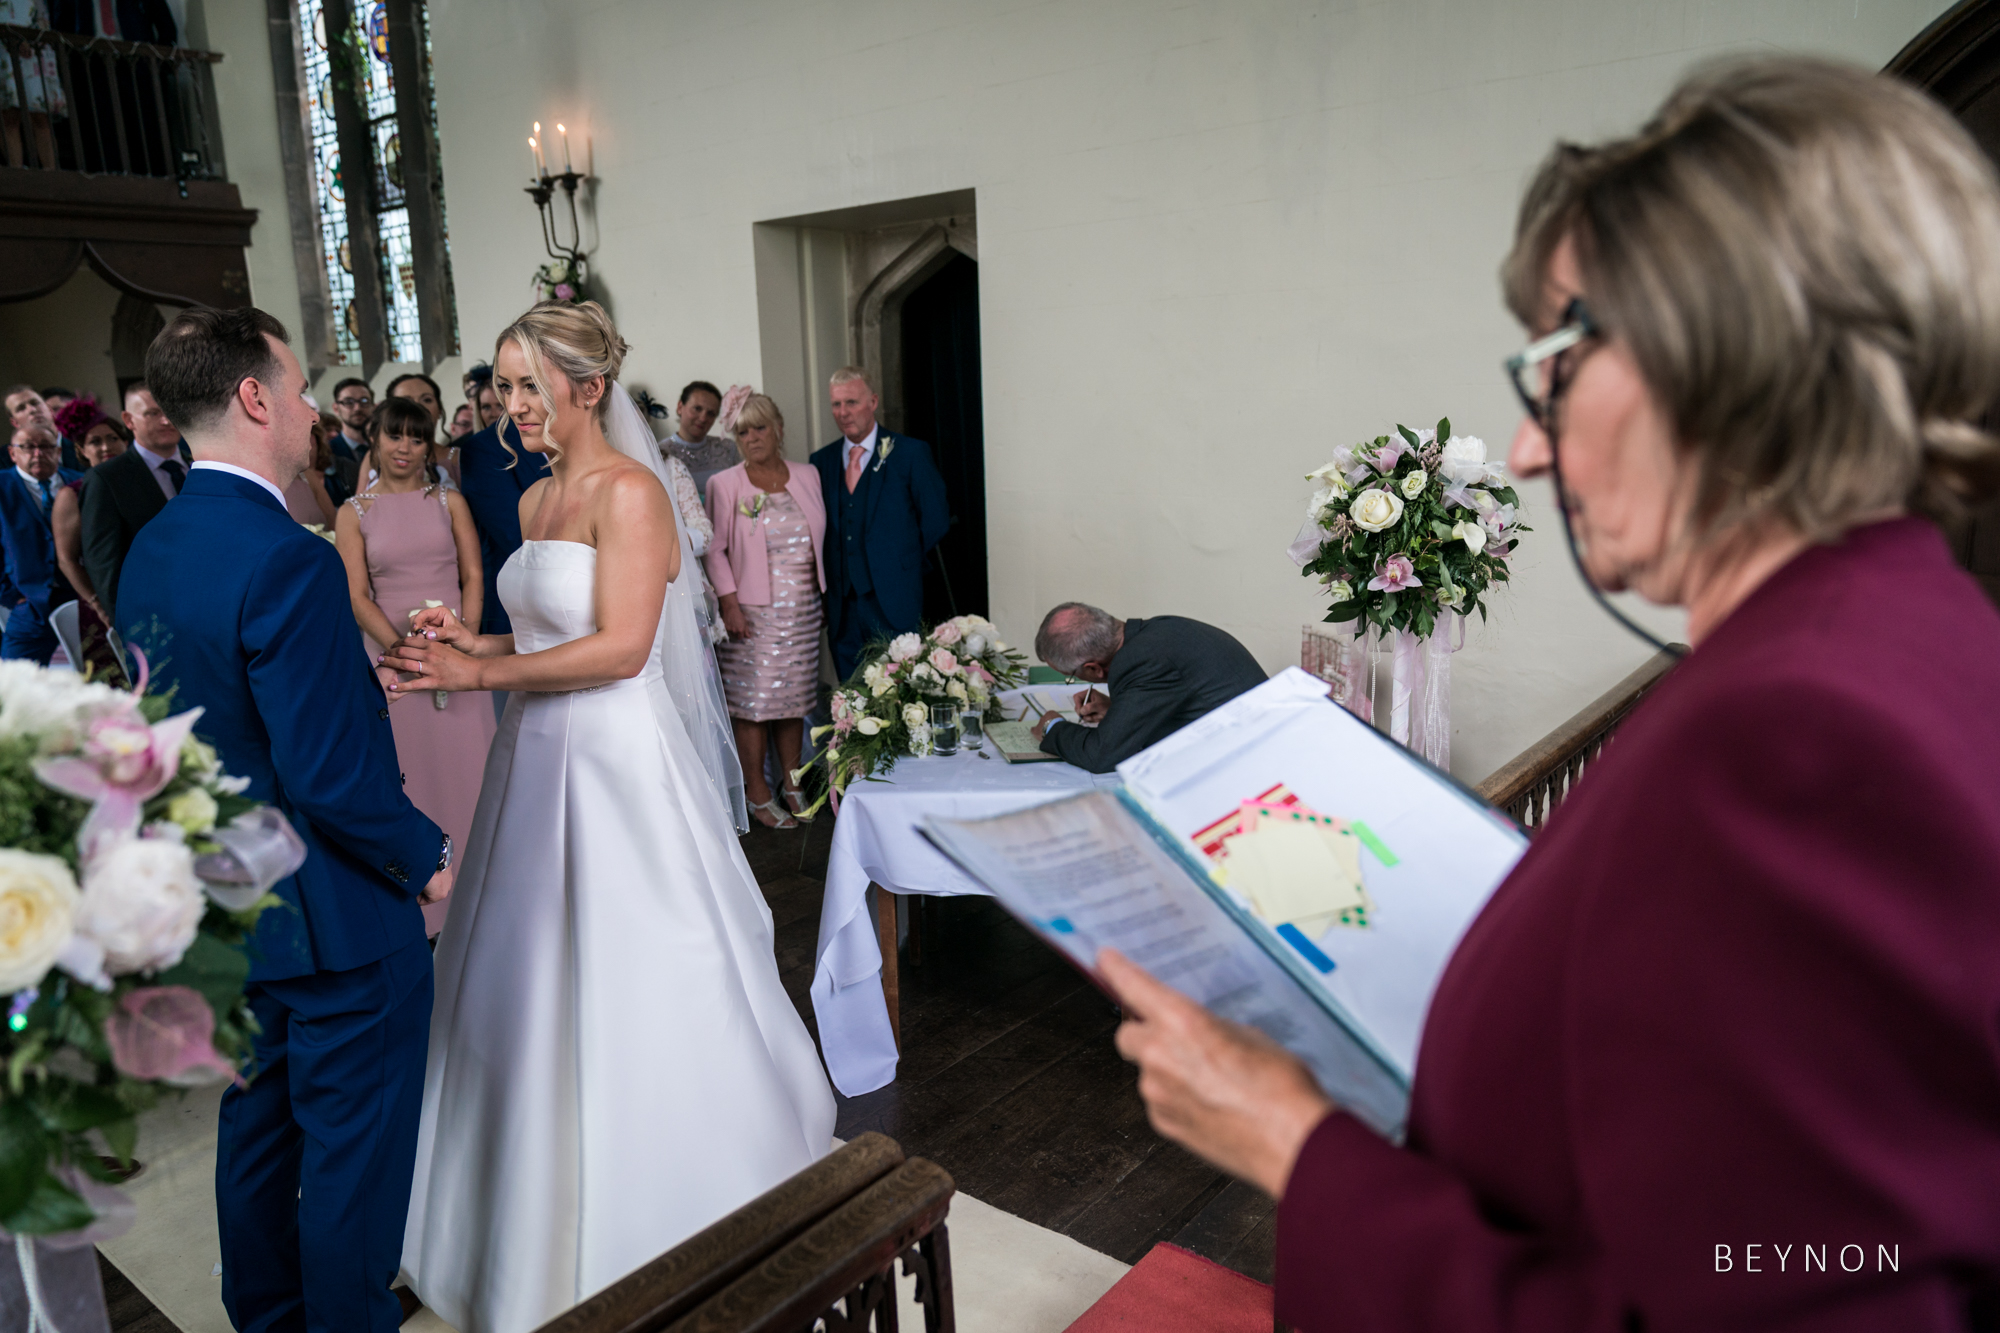 The celebrant reads out loud